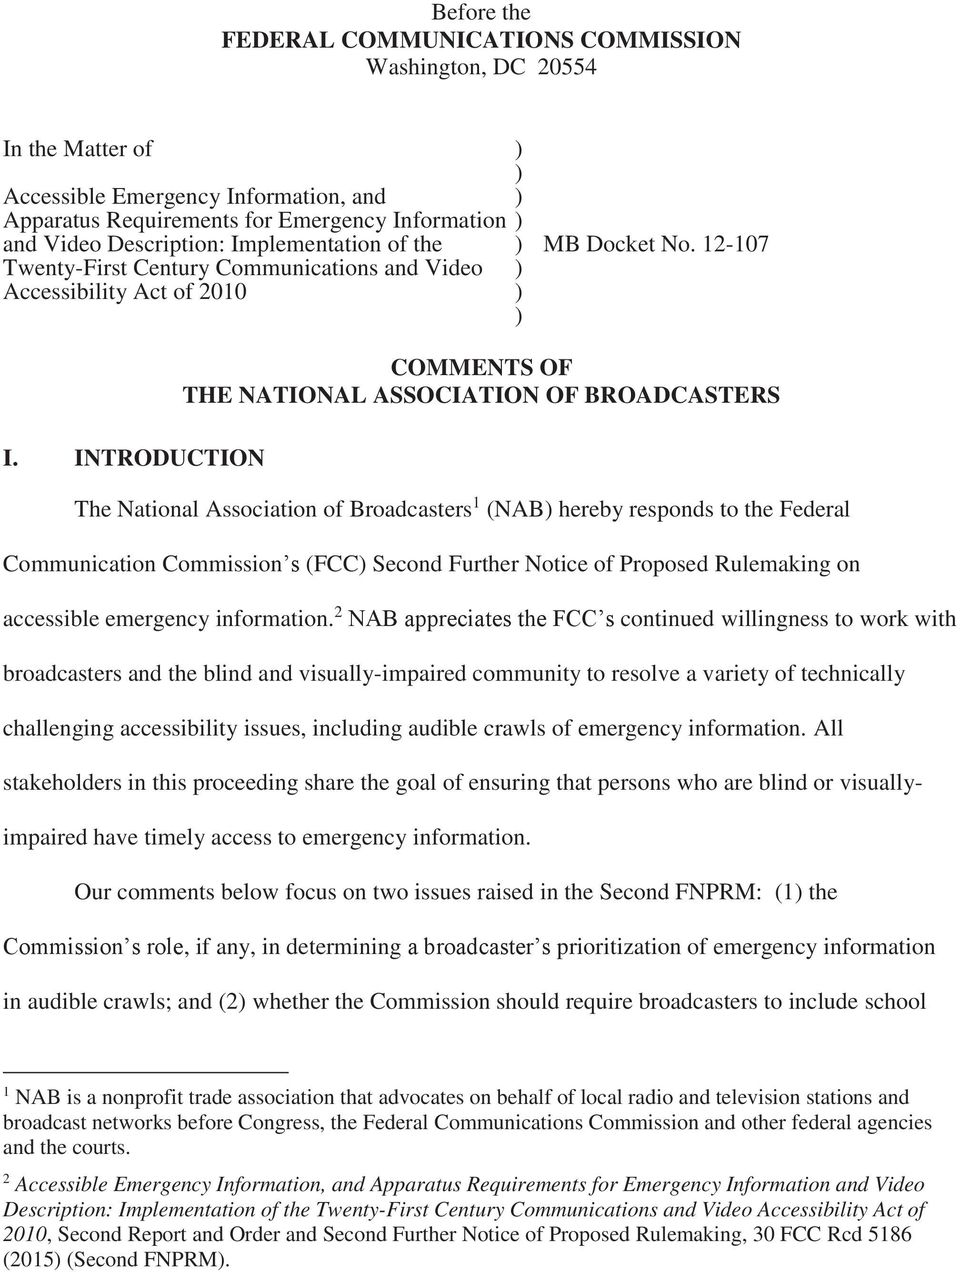 INTRODUCTION COMMENTS OF THE NATIONAL ASSOCIATION OF BROADCASTERS The National Association of Broadcasters 1 (NAB hereby responds to the Federal Communication Commission s (FCC Second Further Notice